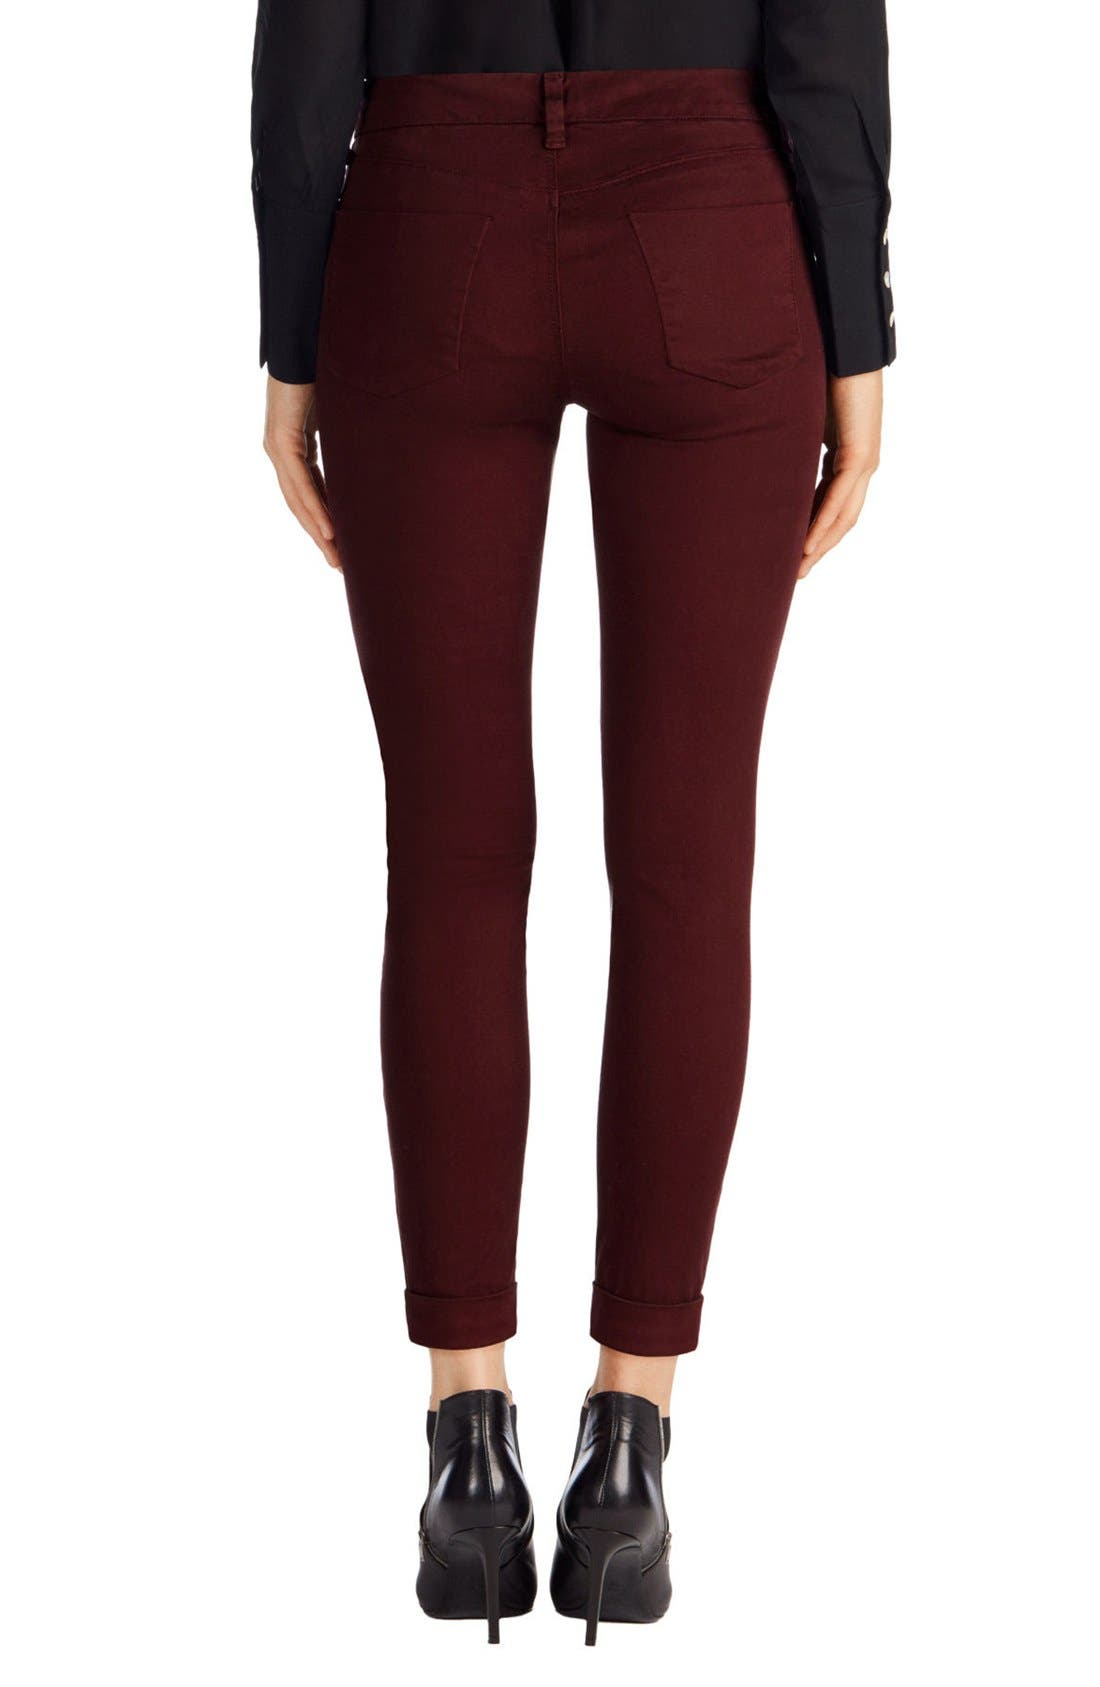 'Anja' Cuffed Crop Skinny Jeans,                             Alternate thumbnail 25, color,